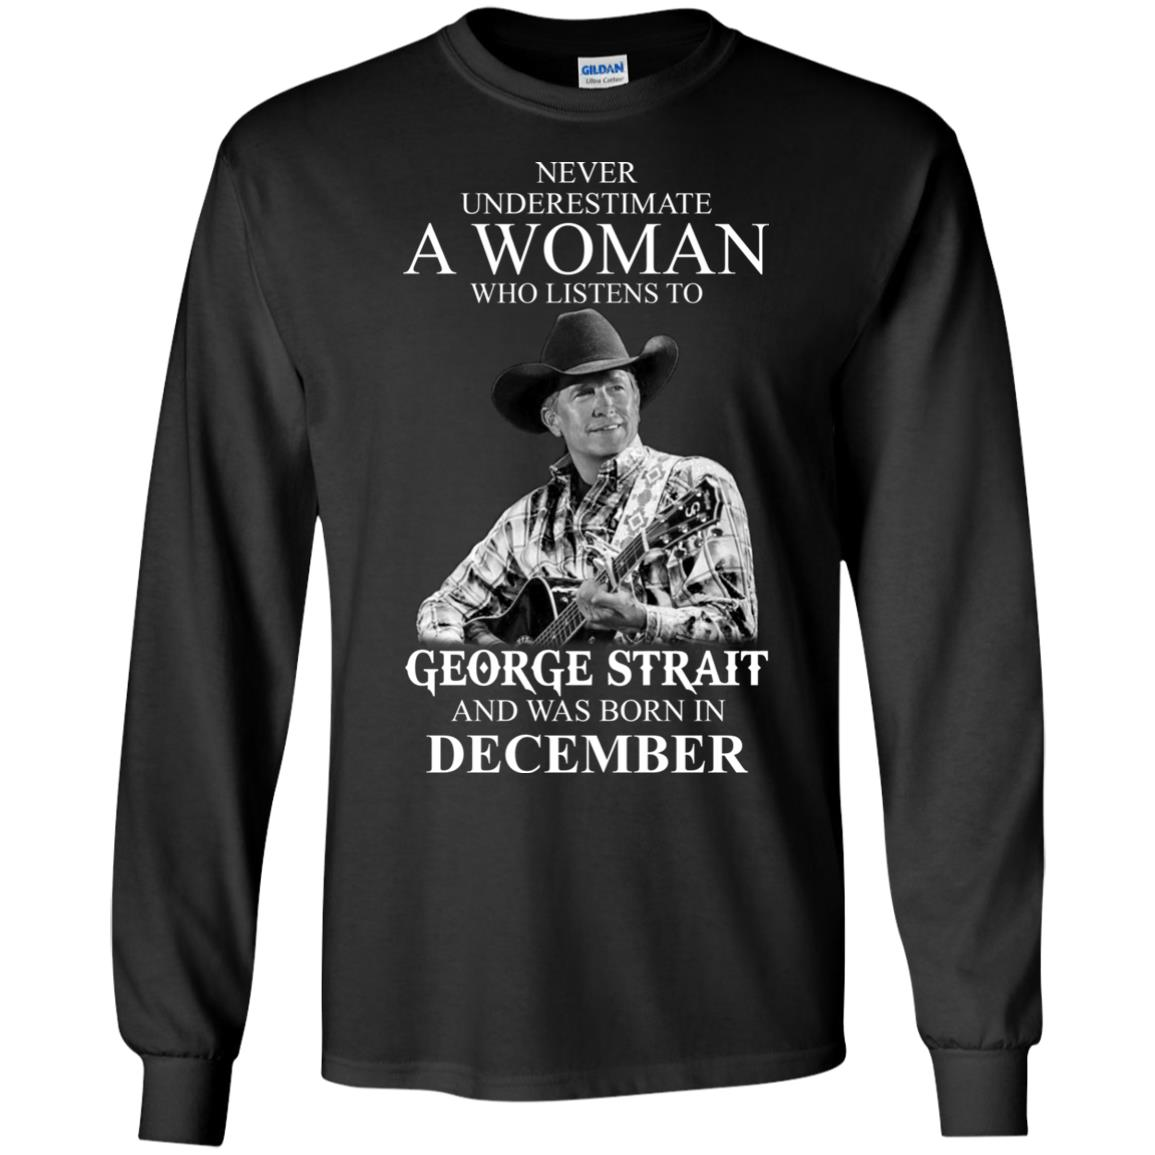 image 340 - Never Underestimate A Woman Who Listens To George Strait And Was Born In December shirt